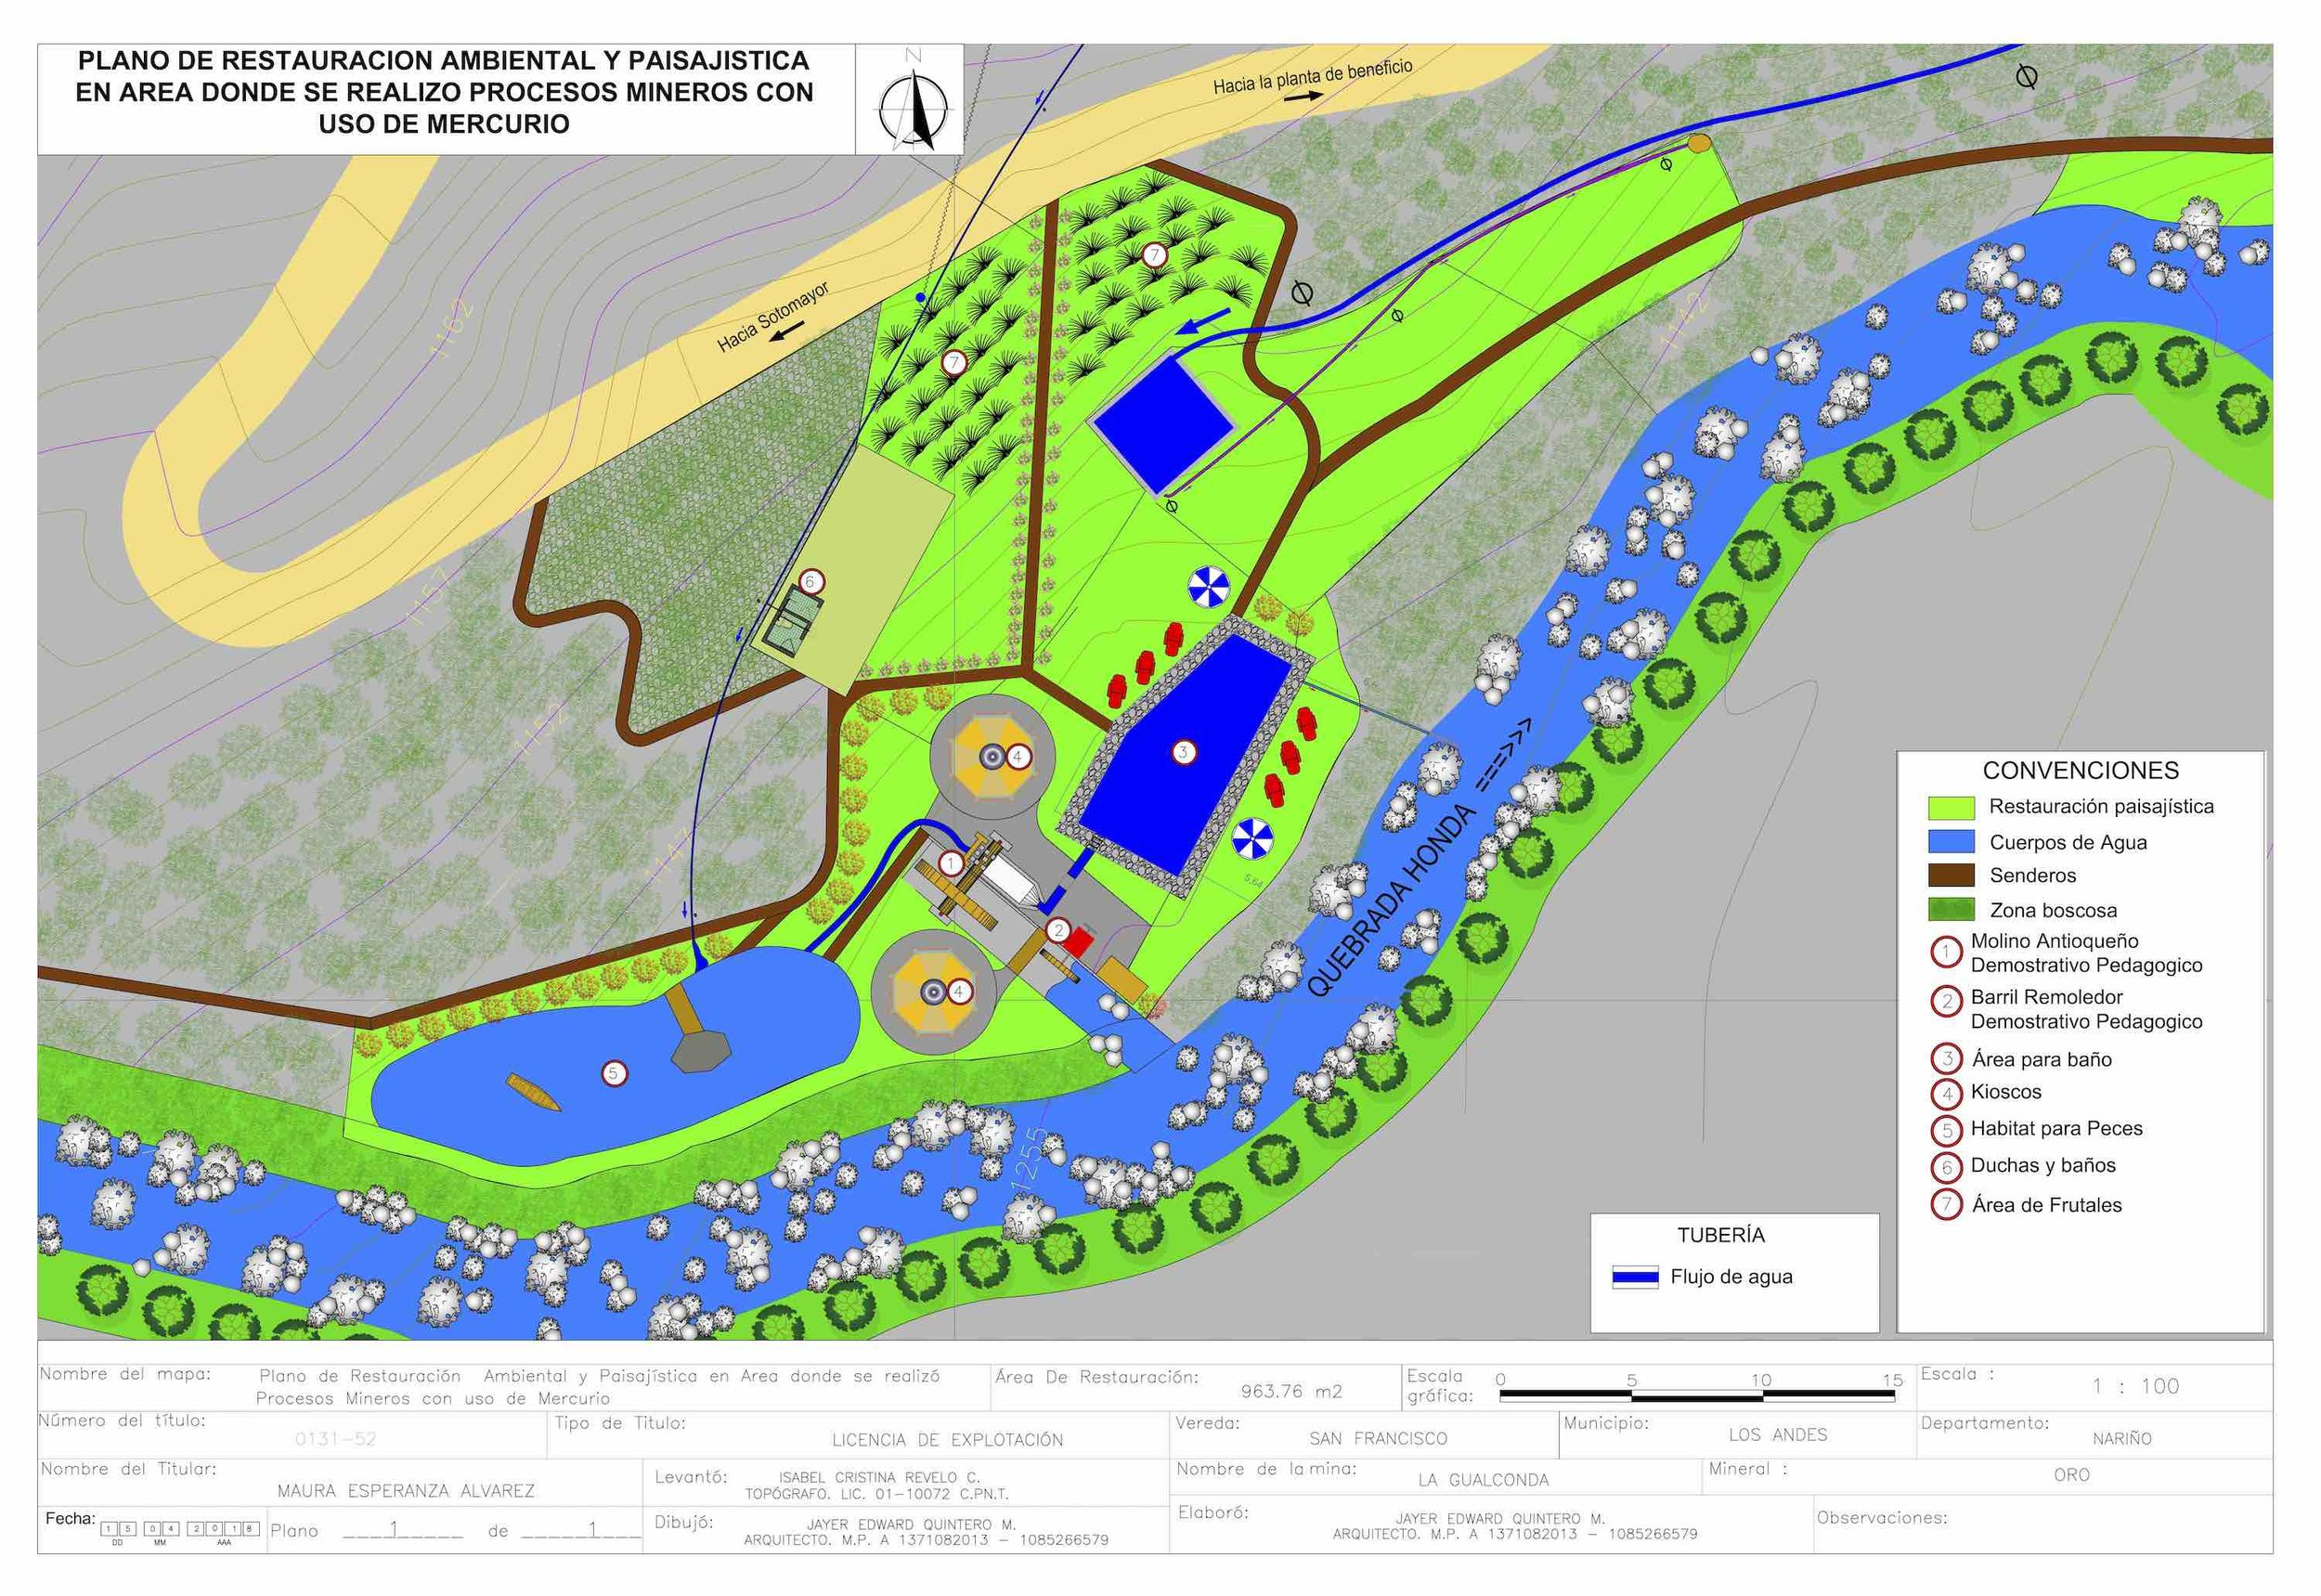 Site plan post mercury clean-up developed by the Regional Environmental Authority.